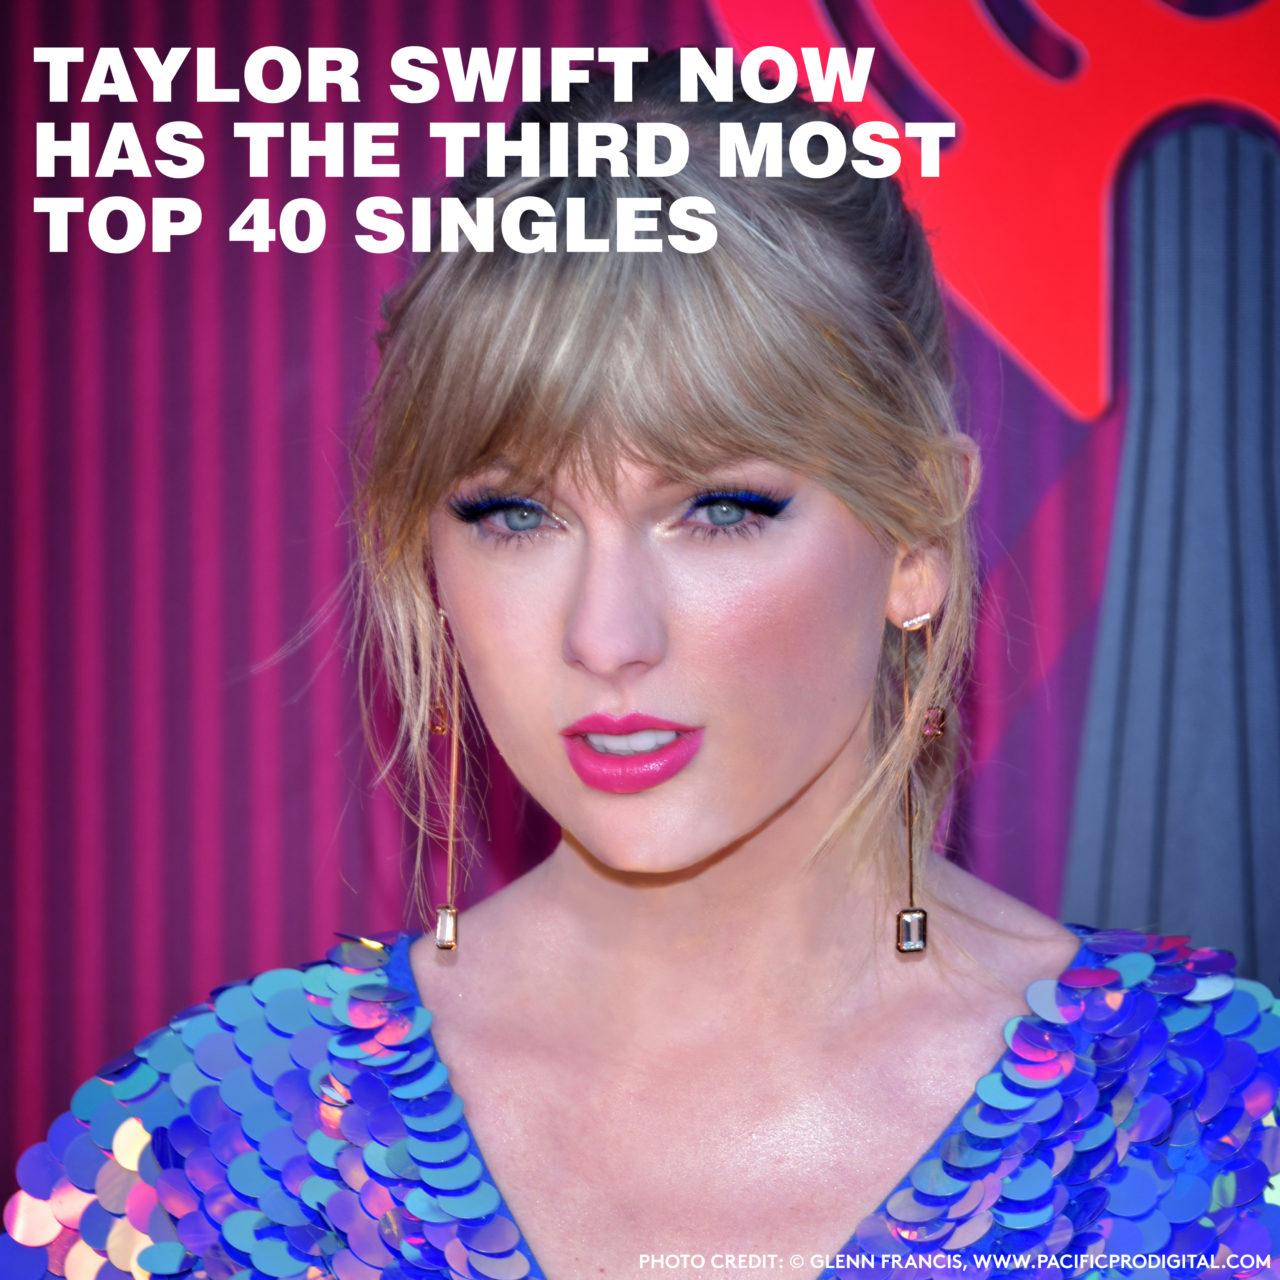 """TAYLOR SWIFT's latest single """"Me!"""" debuted at #2 on the Hot 100 this week.   It's her 57th Top 40 hitout before if you can believe that . . . and it puts her in good company."""